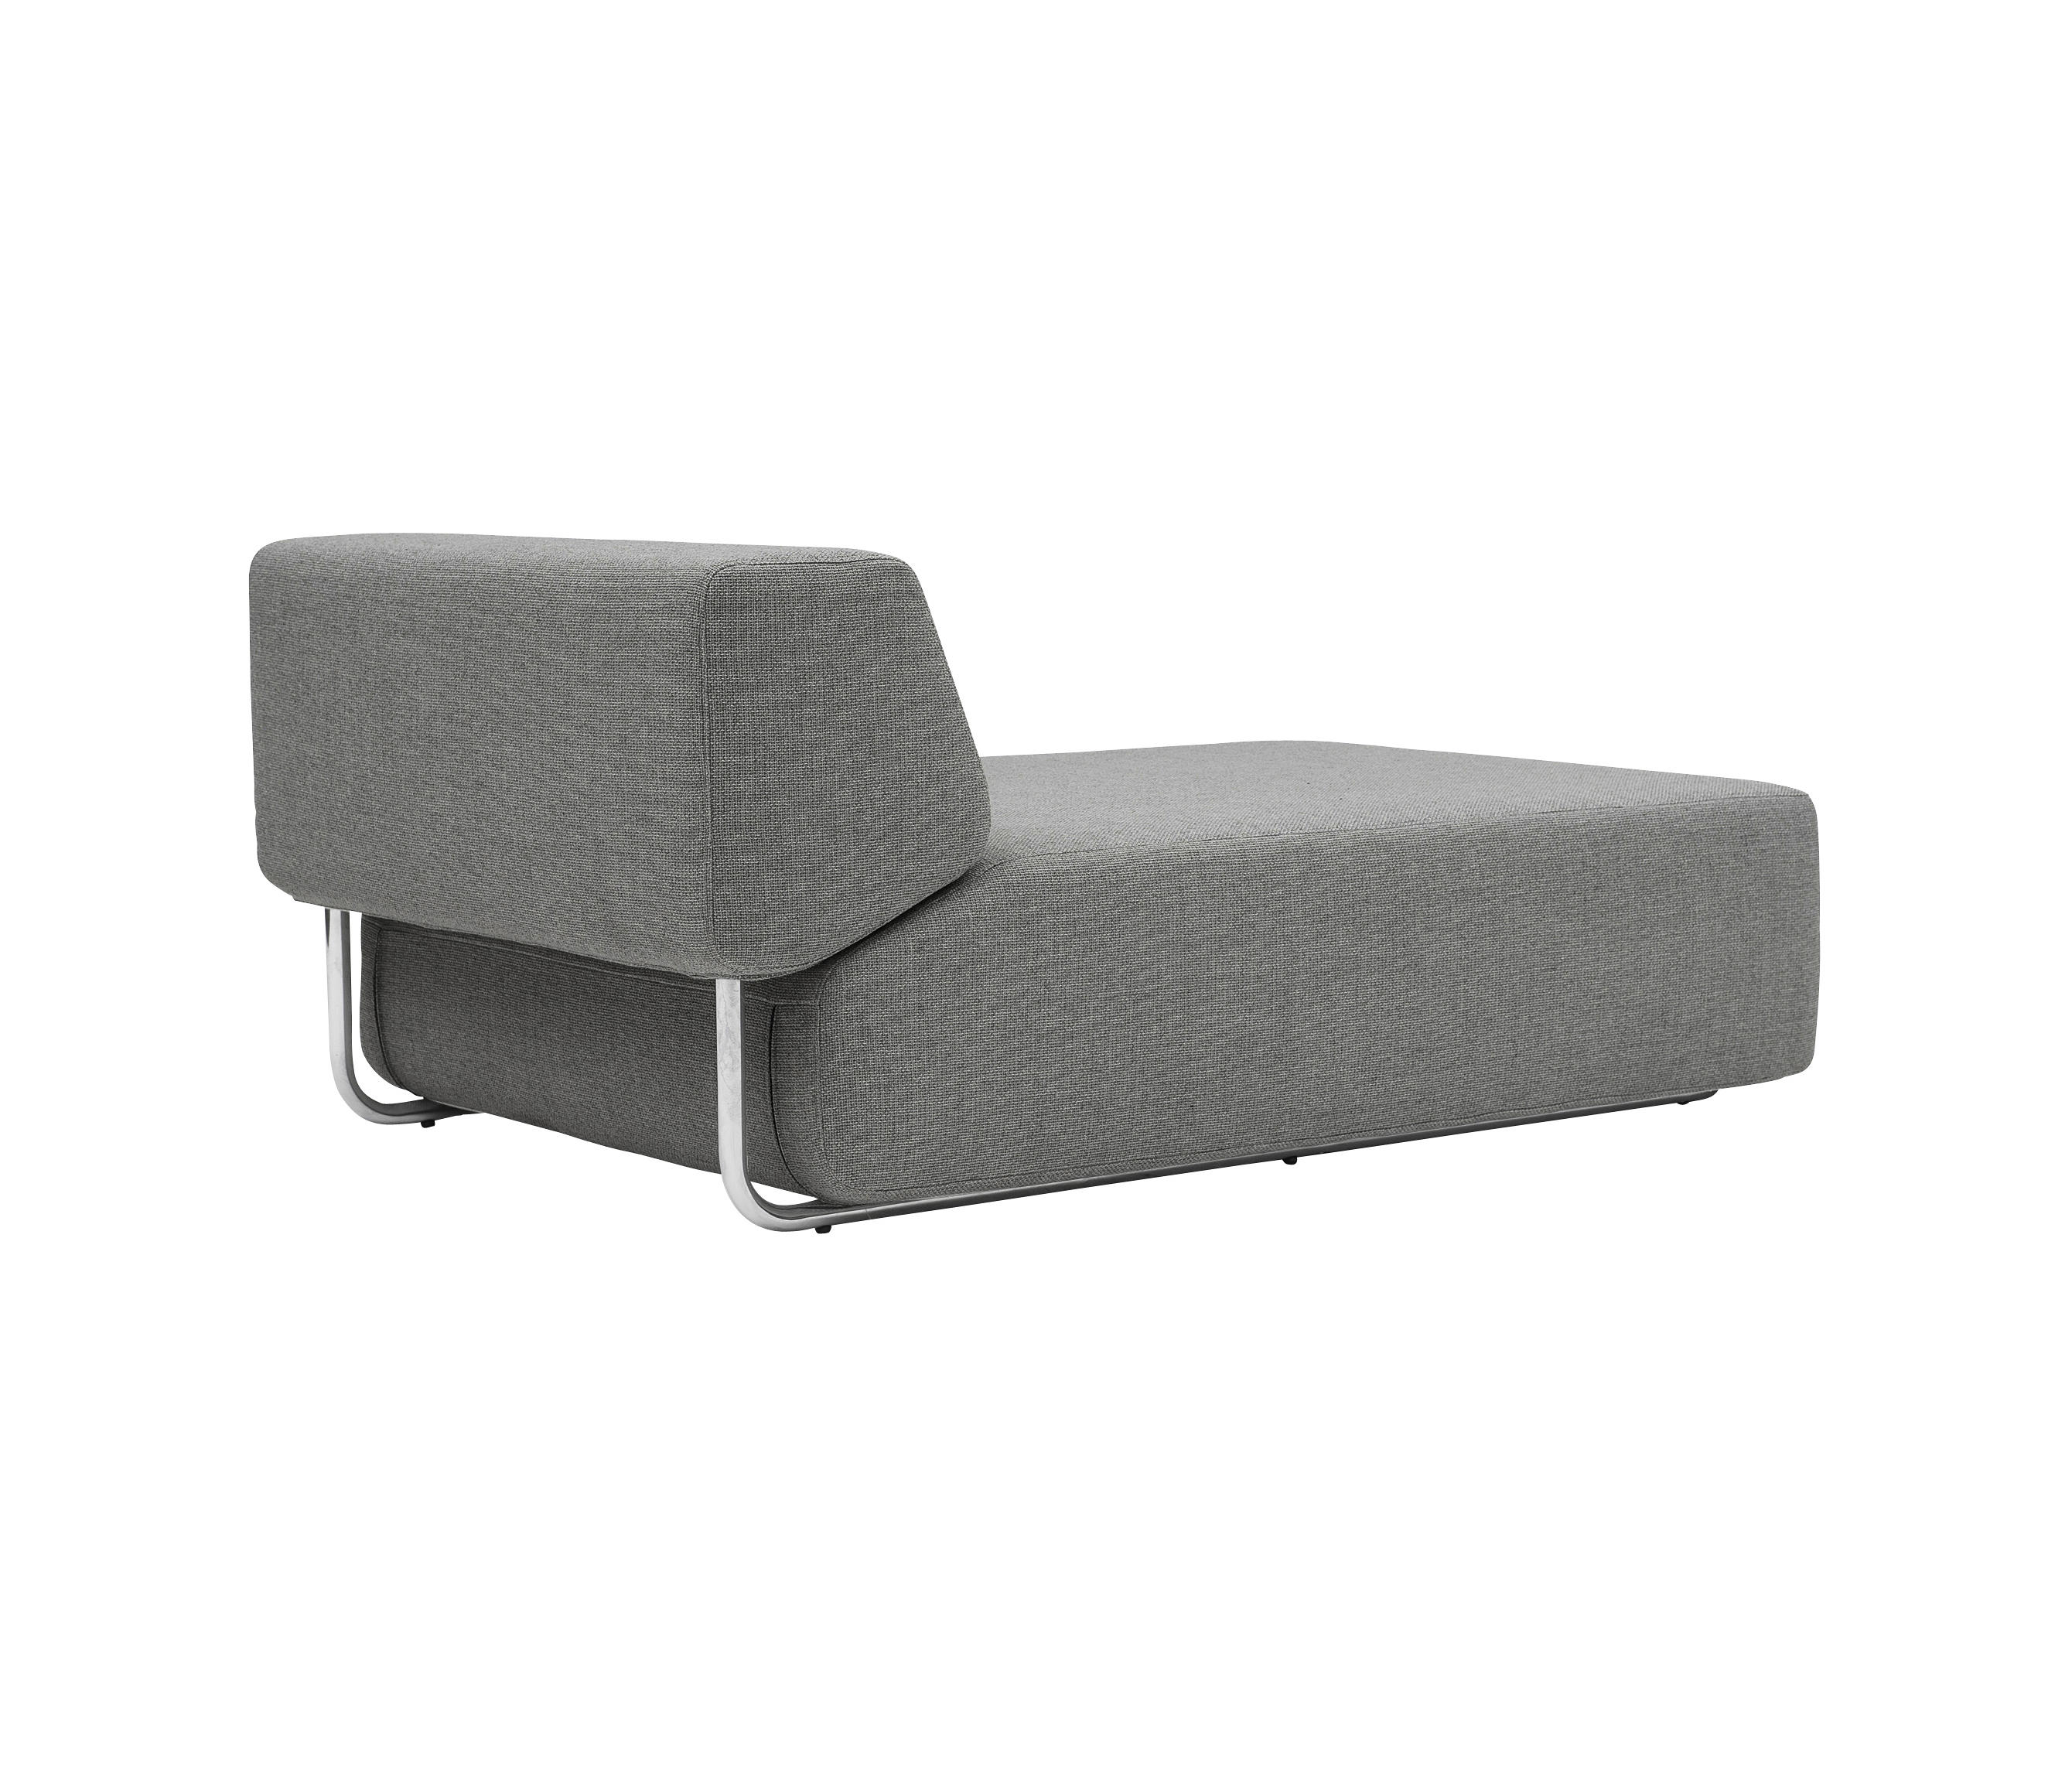 Chaise Longue Classic Design Italia.Noa Chaise Longues From Softline Architonic